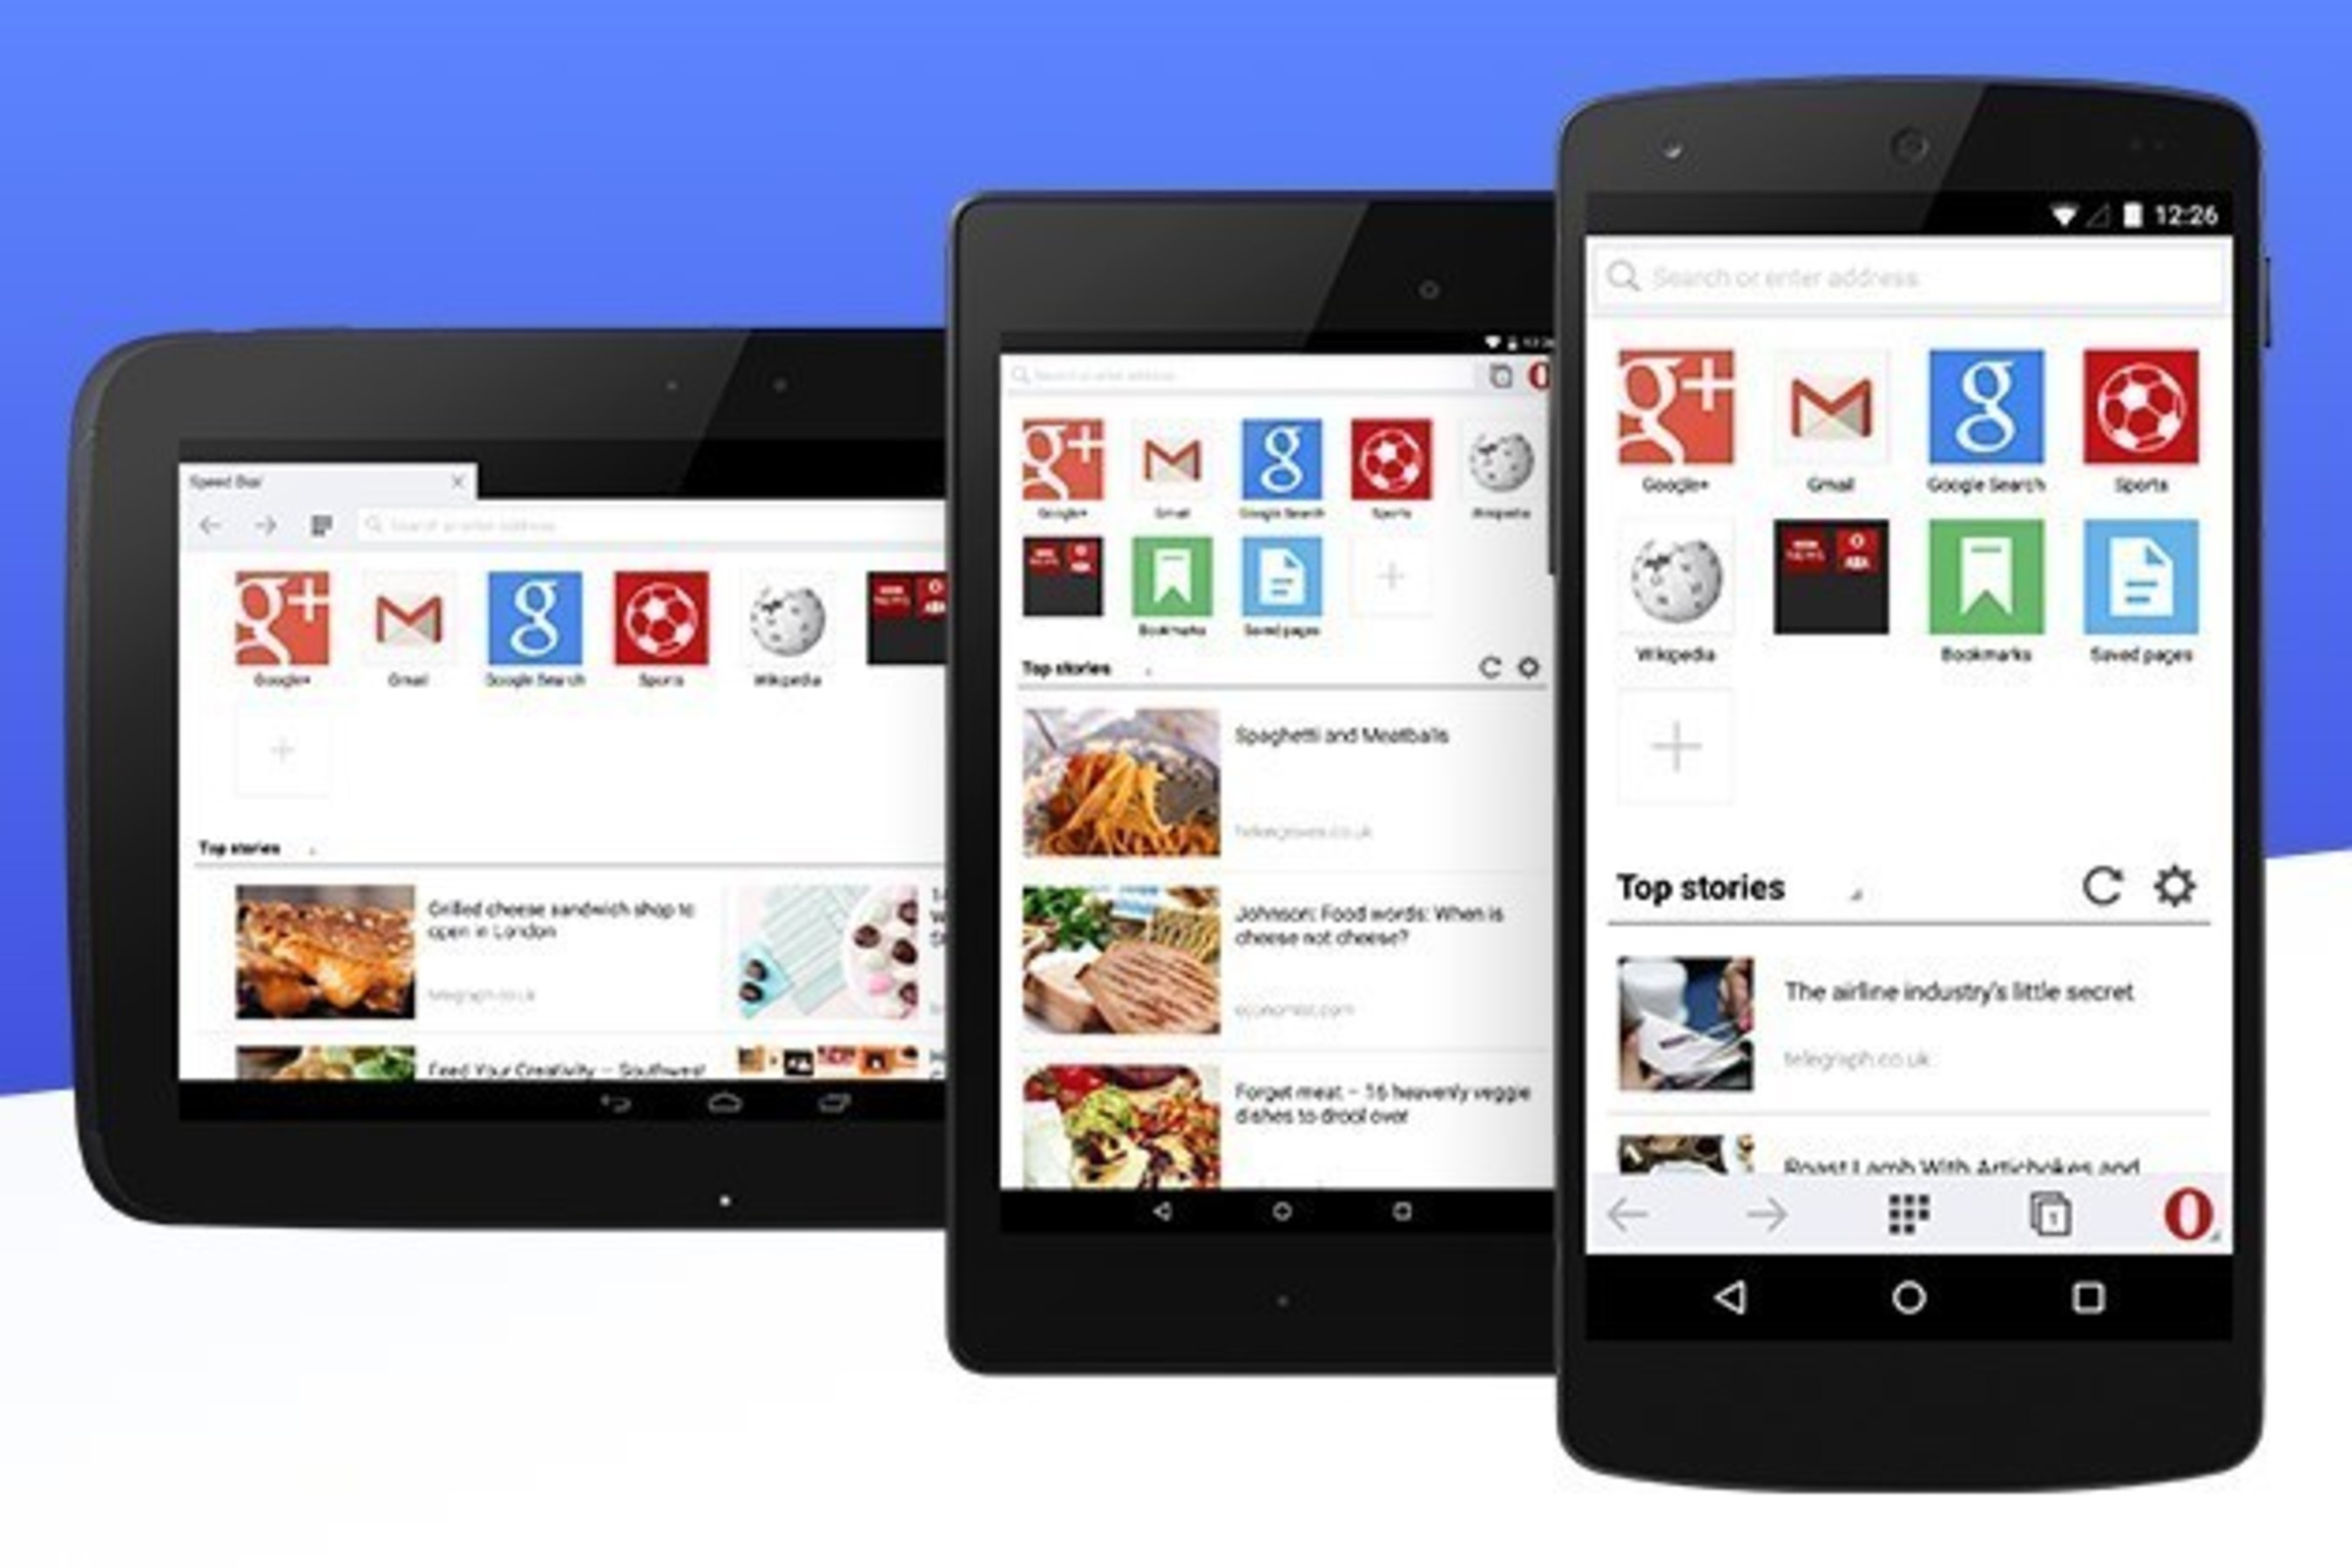 Opera to double user base on Android by 2017